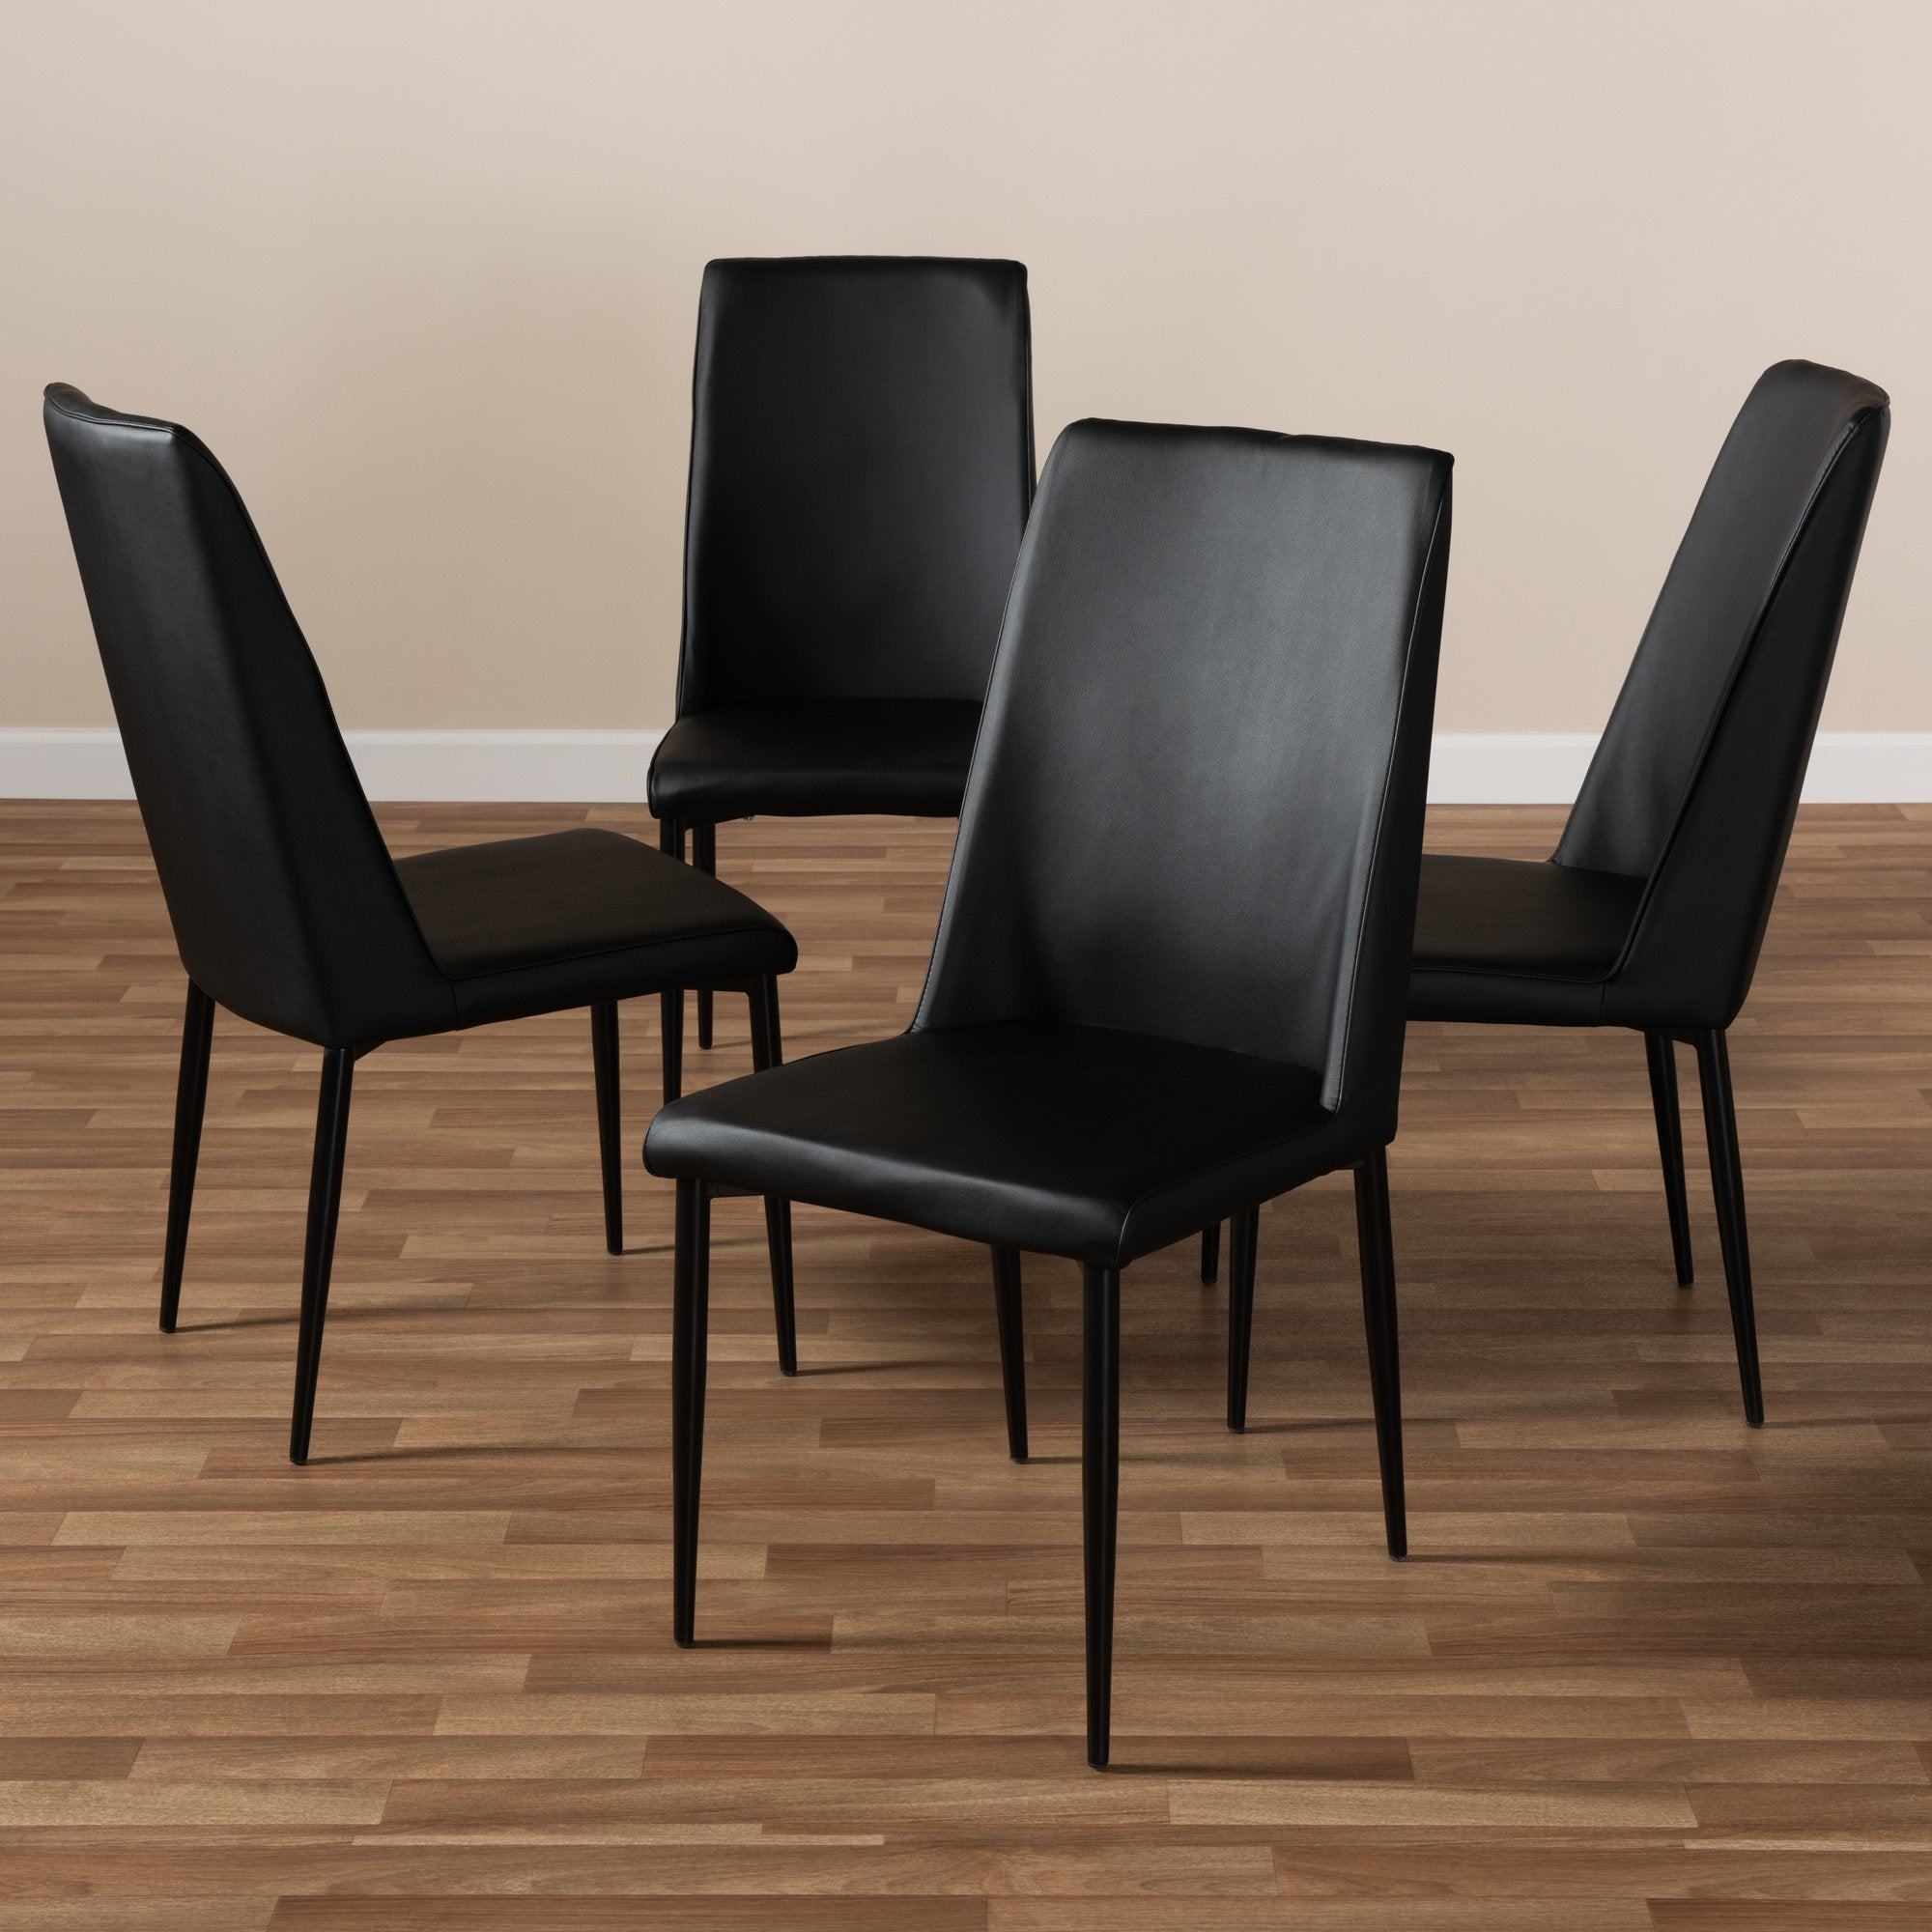 Sanddahl Leather Chair (Set of 4)